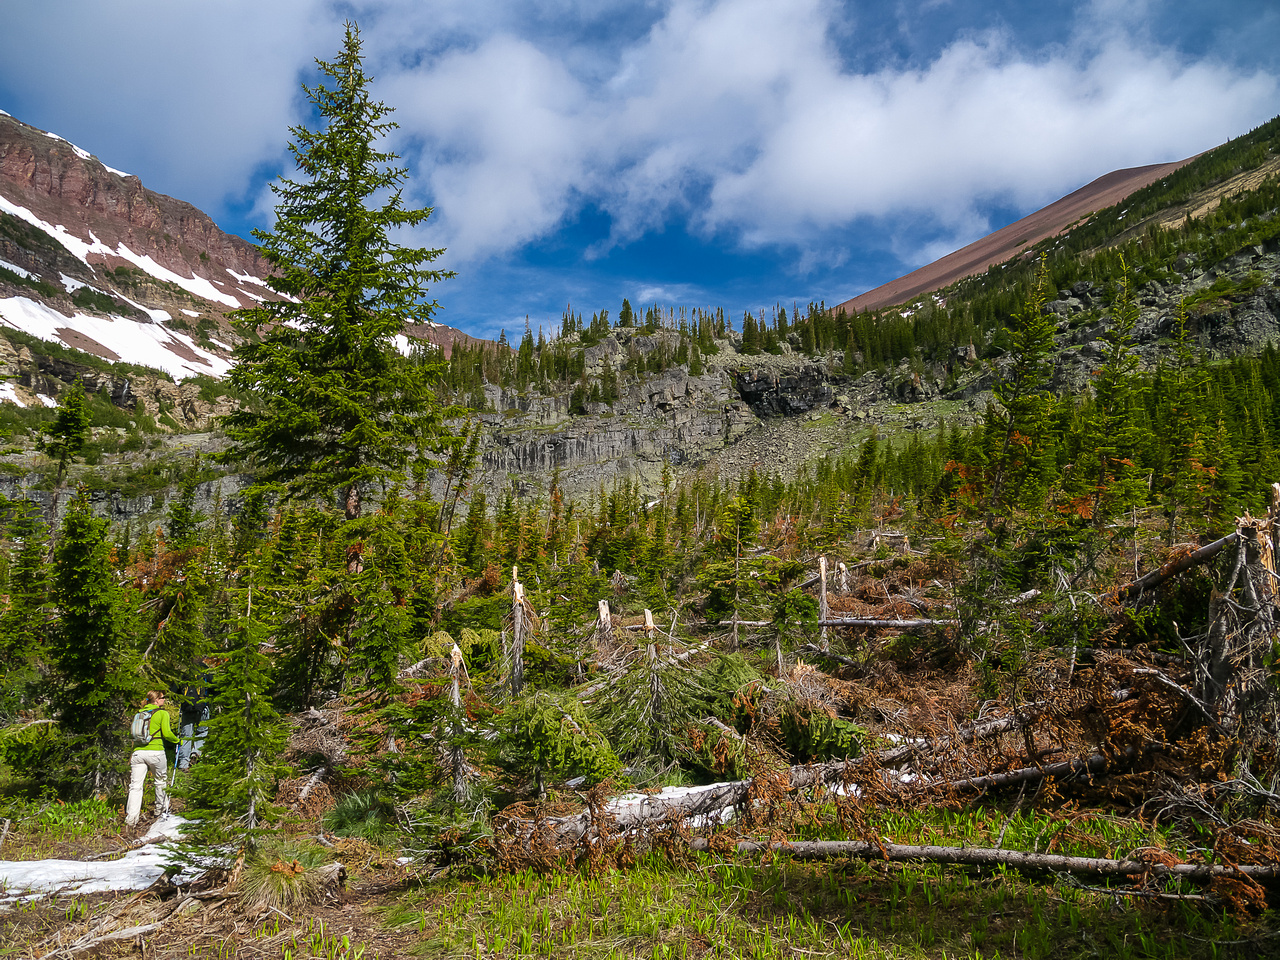 Lots of deadfall and avi debris on the trail above Goat Lake. You can see the Avion / Newman col in the center